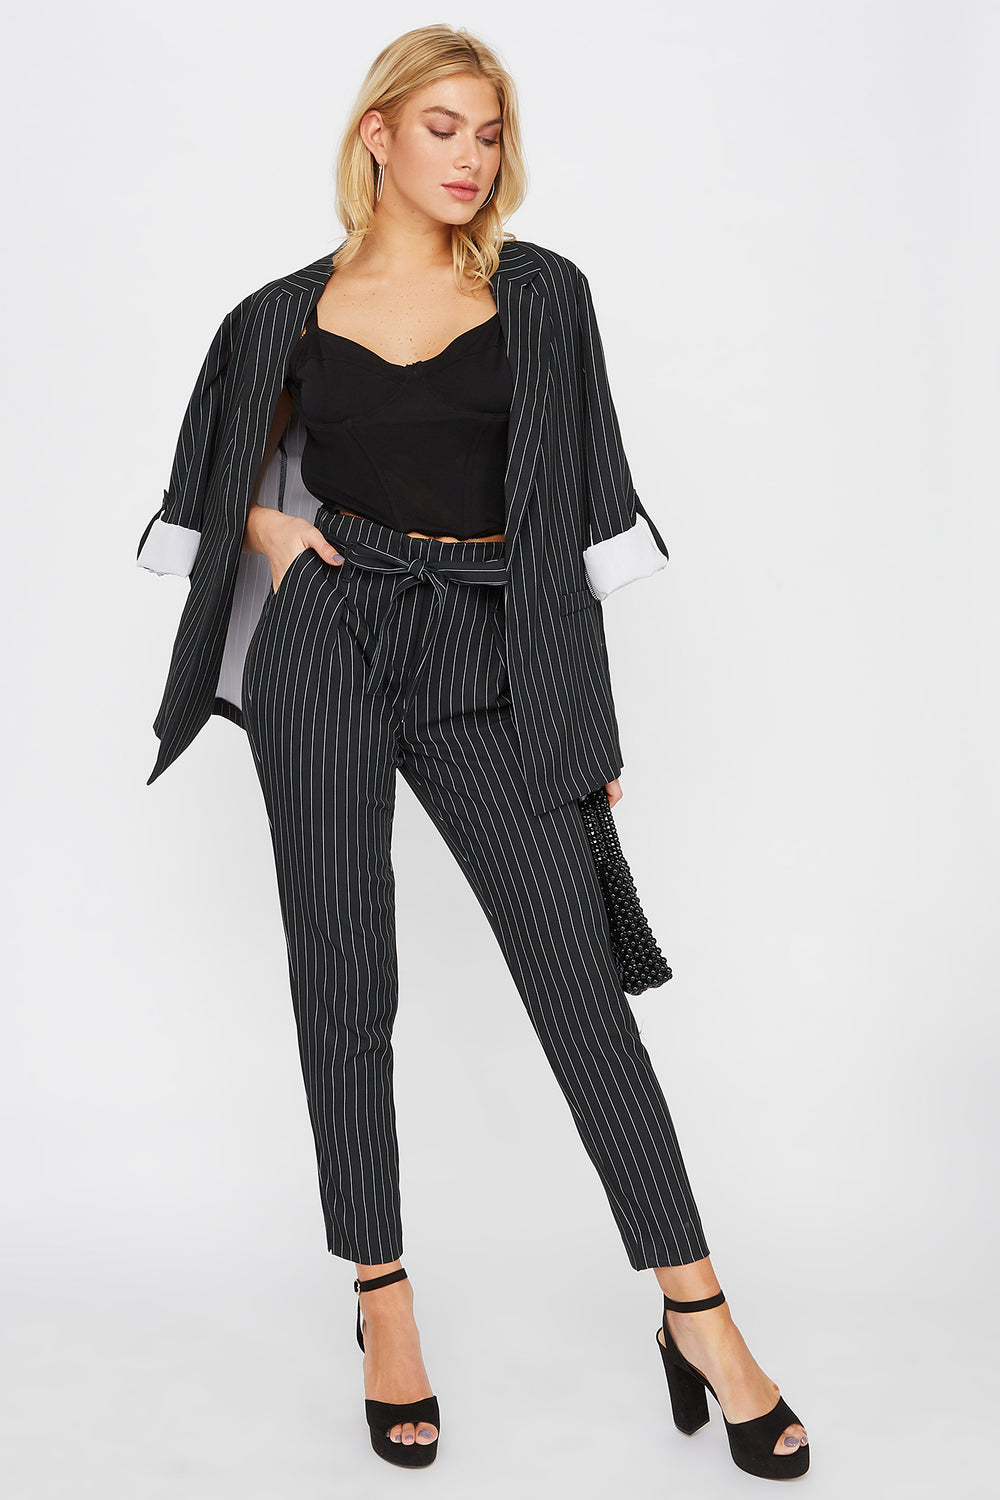 High-Rise Pinstripe Self-Tie Dress Pant Black